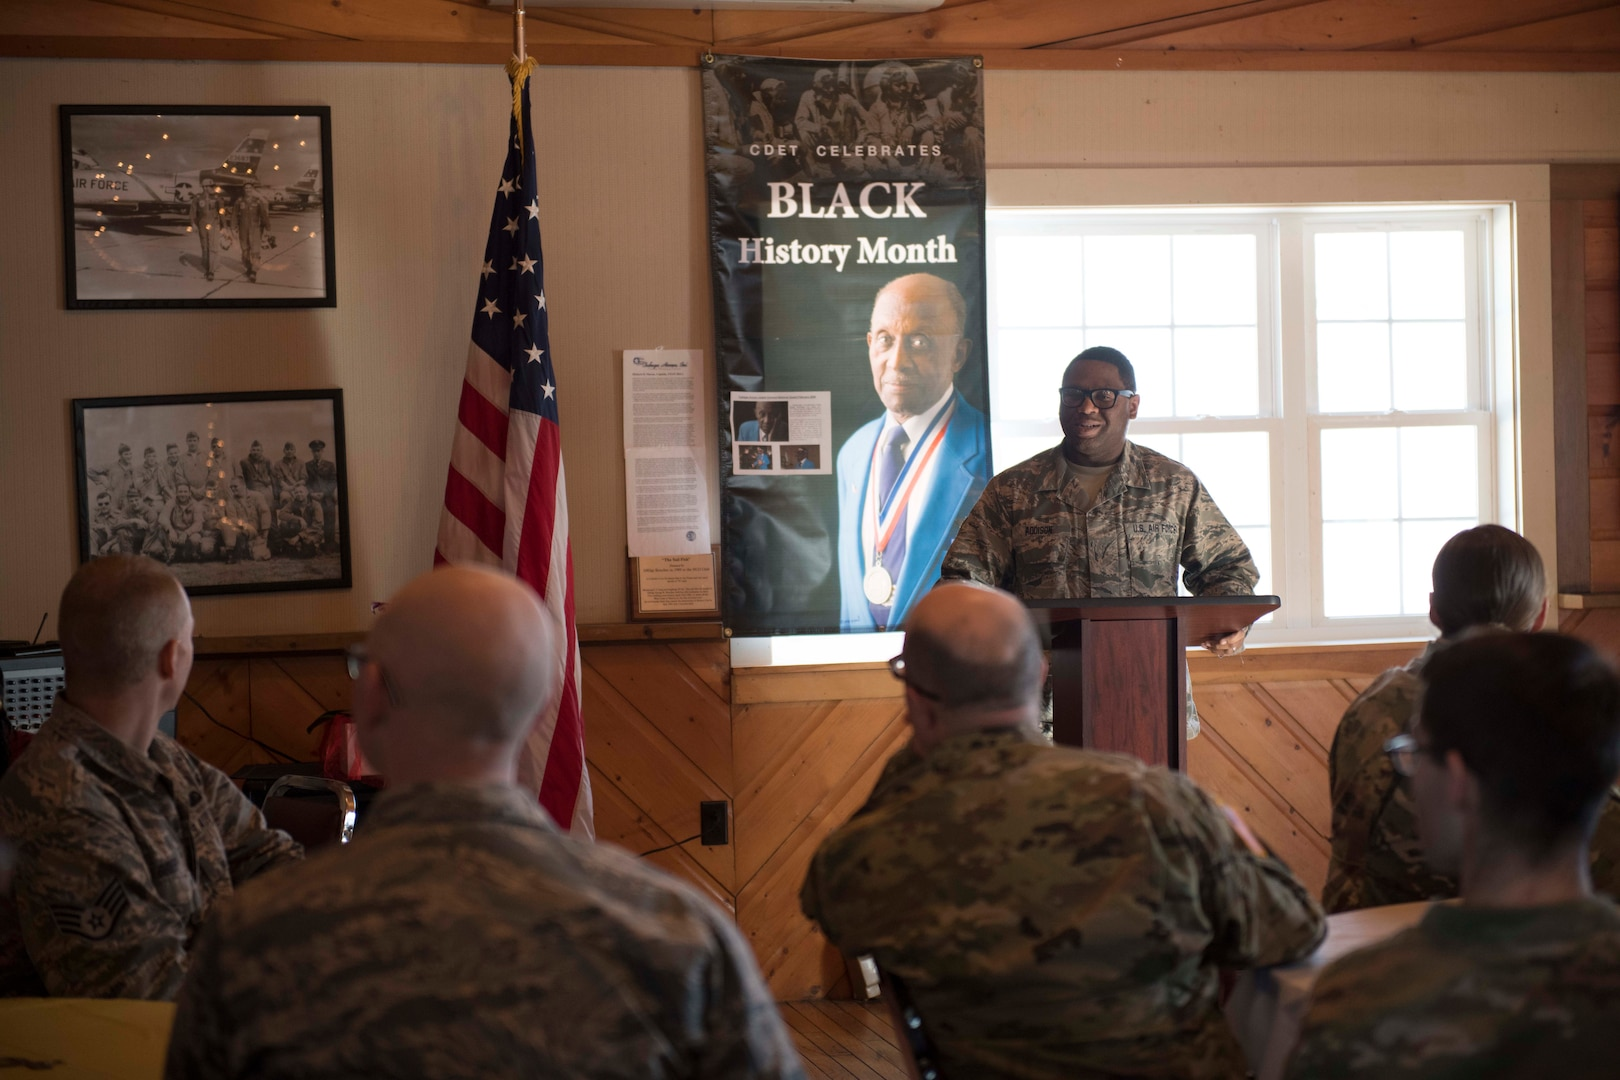 U.S. Air Force Technical Sgt. Kirby Addison opens a luncheon with a few words at the Vermont Air National Guard base Feb. 14, 2019. The Cultural Diversity Enhancement Team of the Vermont National Guard hosted a soulful luncheon and discussion for Airmen and Soldiers with a focus on Black History Month and included a guest speaker. (U.S. Air National Guard photo by 2nd Lt. Chelsea Clark)